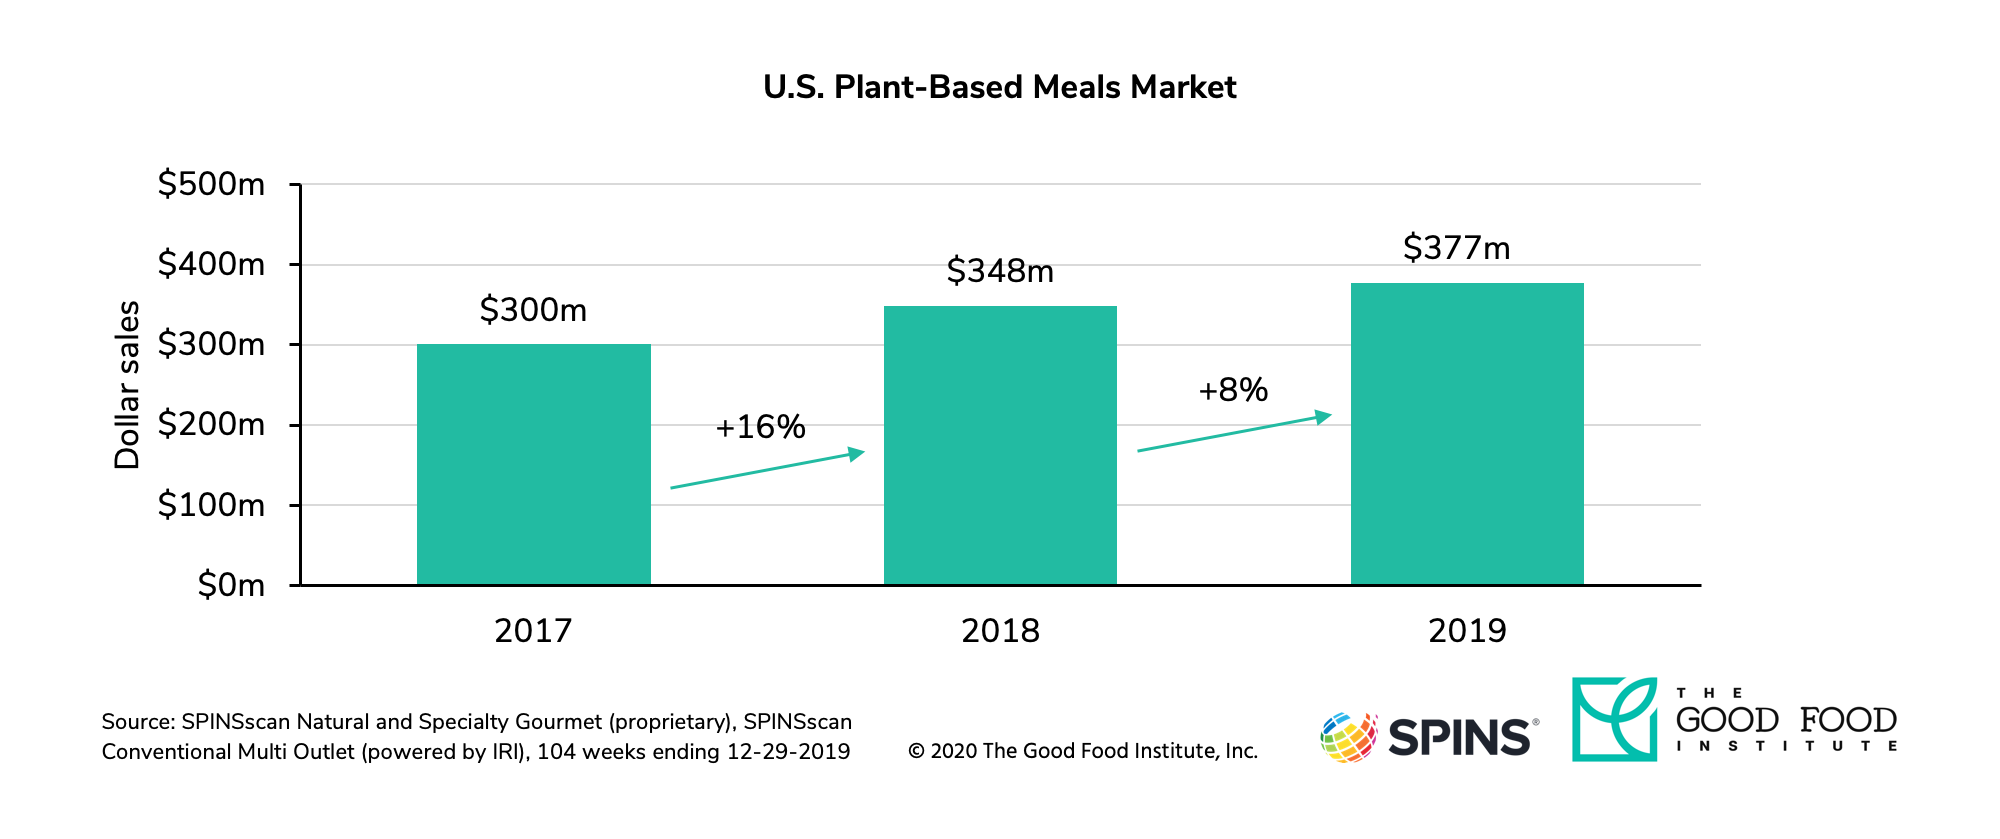 U.S. retail sales of plant-based meals grew to $377 million in 2019.